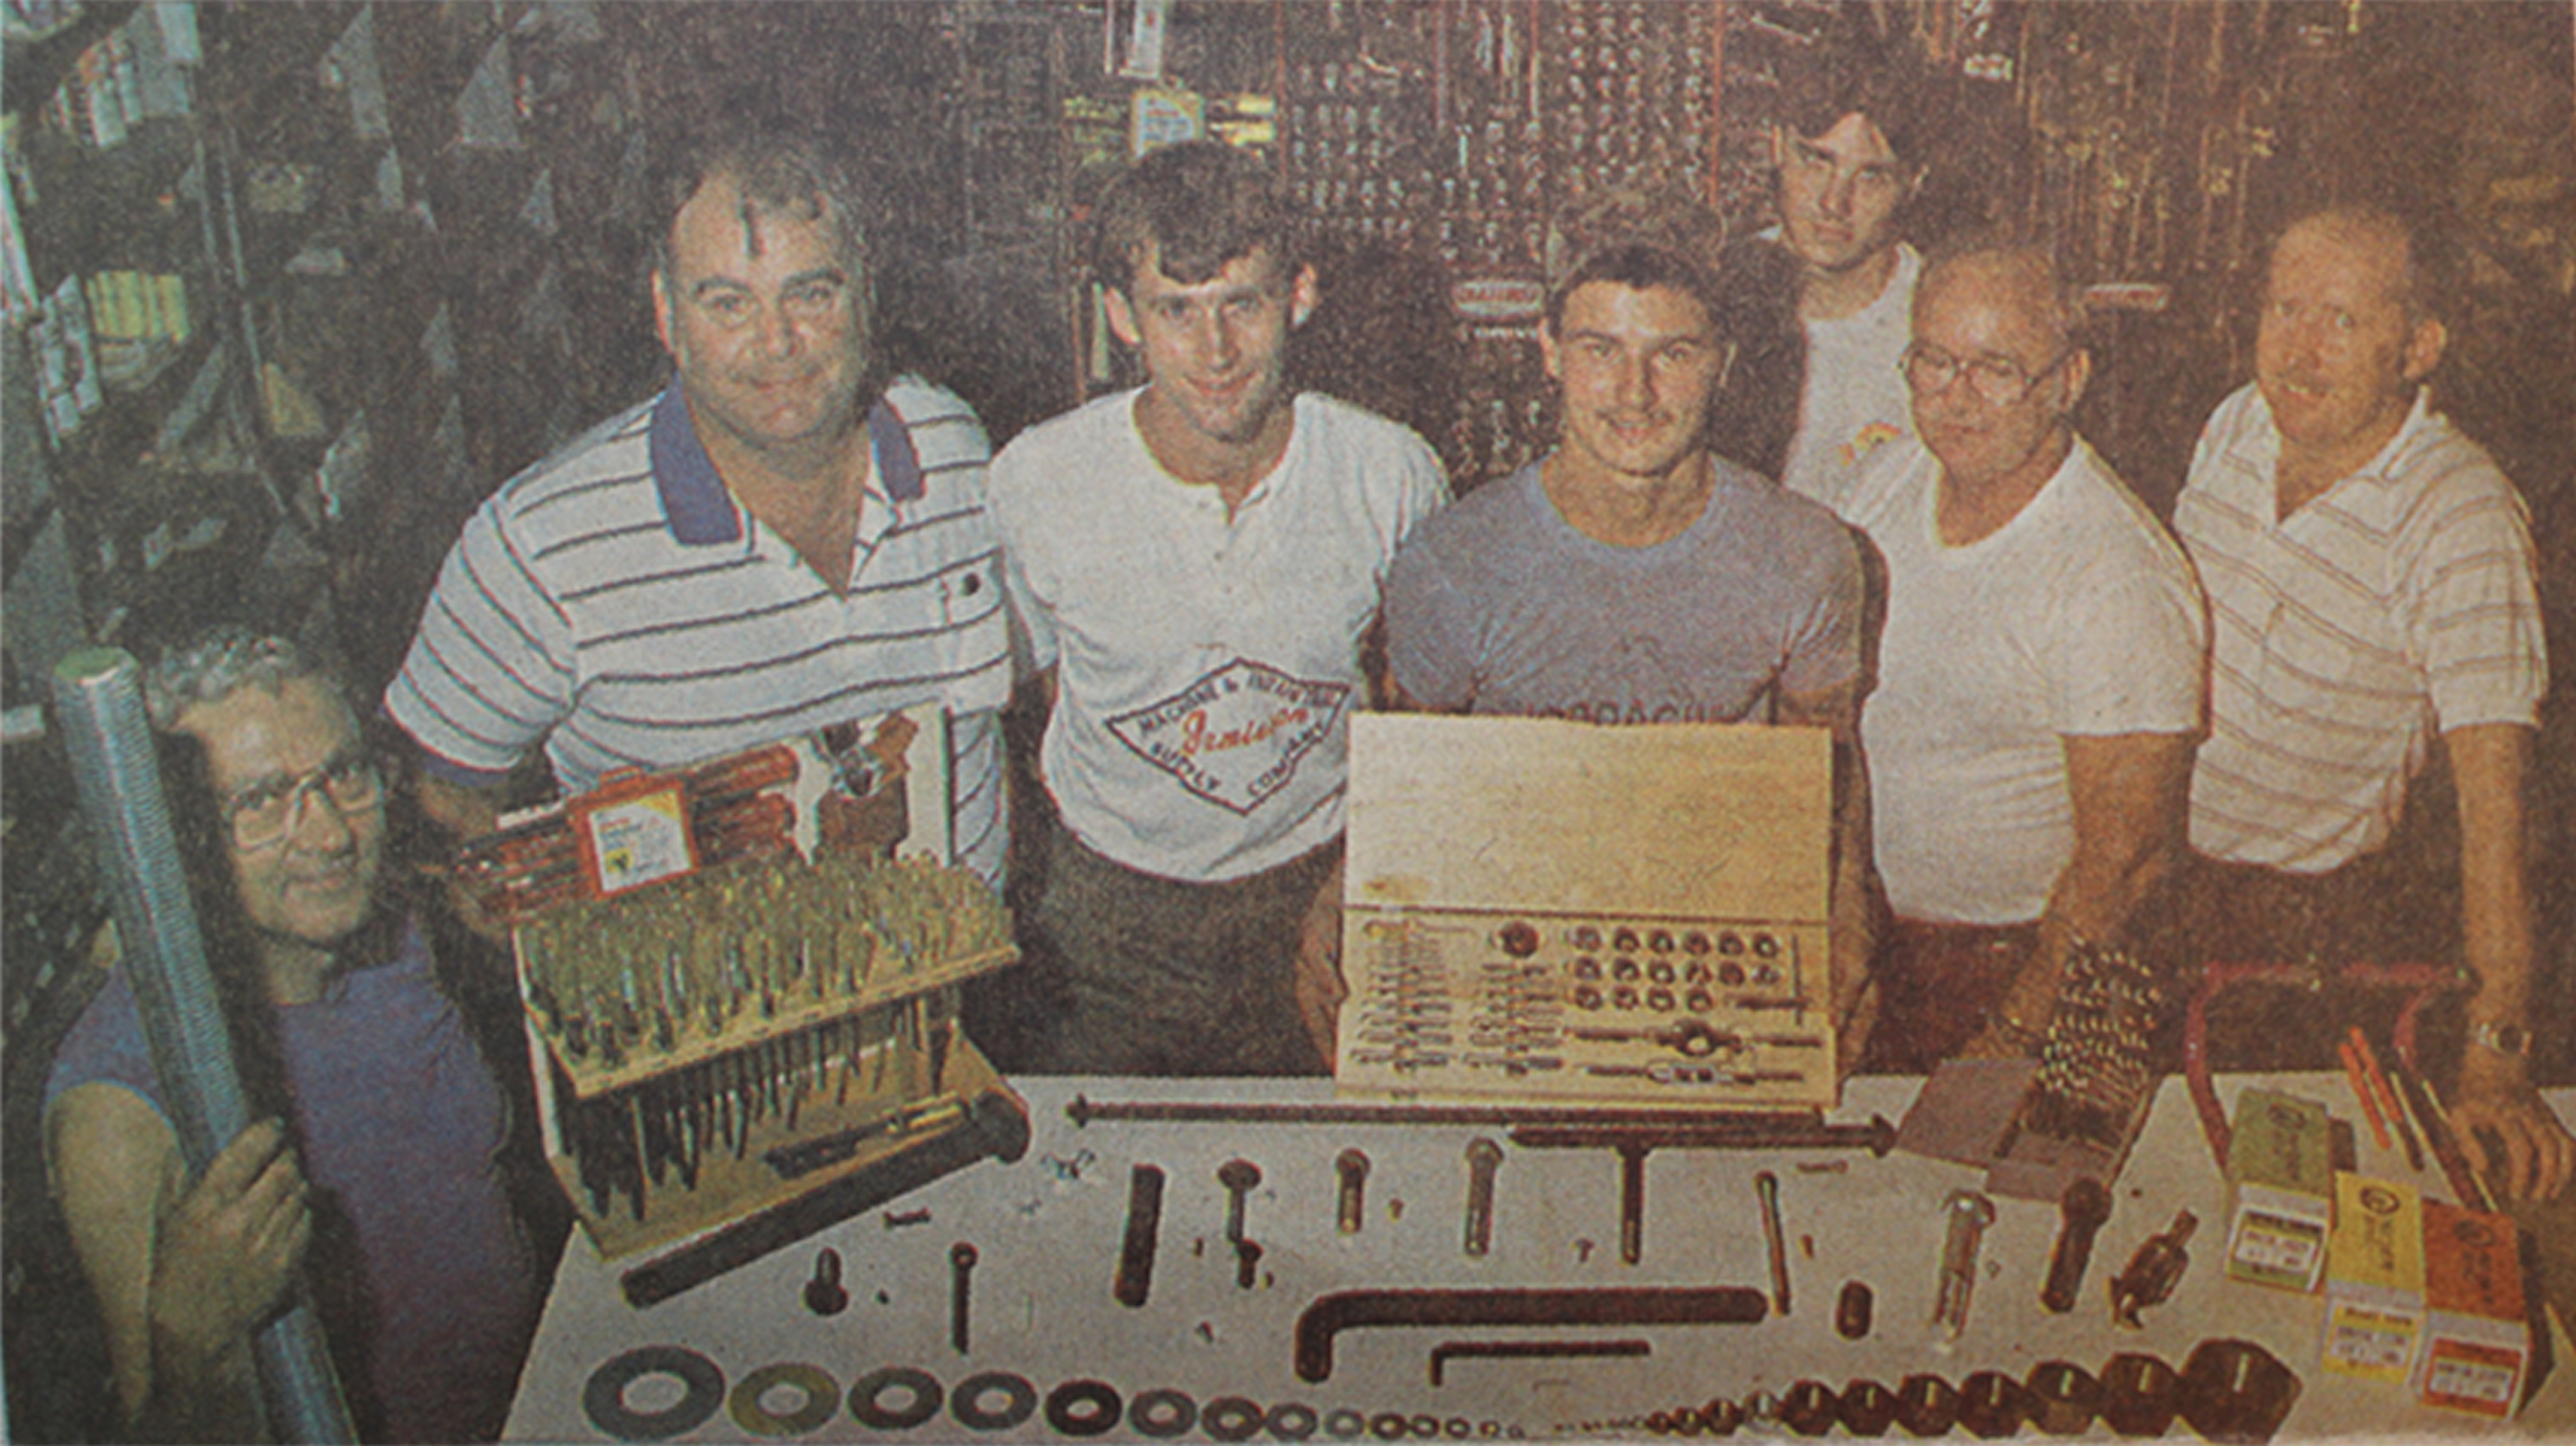 Gordon, 2nd from left, and his son Ed to his left. 1985